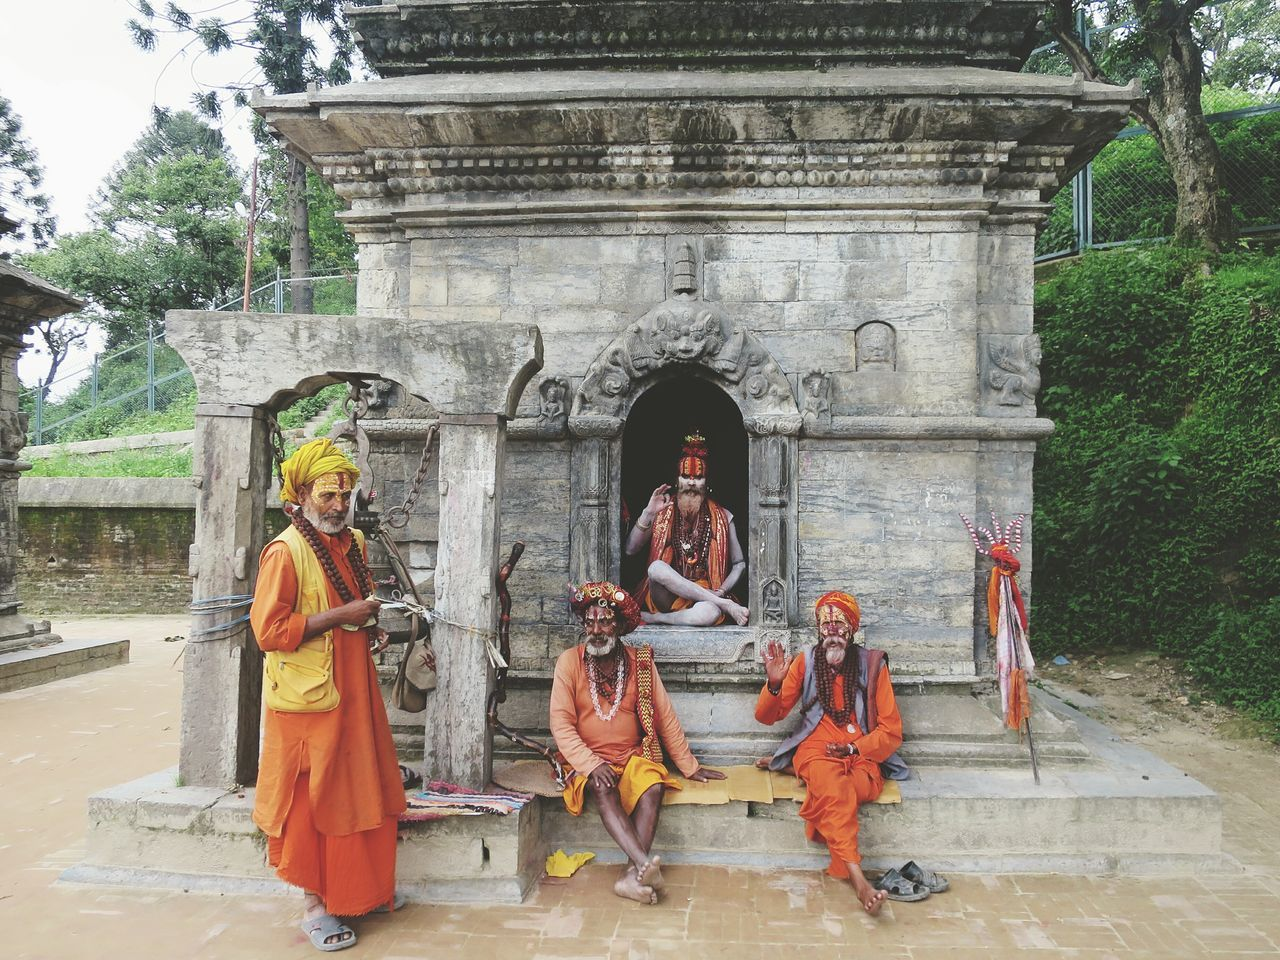 Cultures Traditional Clothing Outdoors Real People Tradition Religion Architecture Men Day People Full Length Nepal Nepali Culture Nepali Way Nepalipeople😊 Pashupatinath Pashupatinath Temple Pashupatinathtemple Pashupati Kathmanduvalley Kathmandu Valley EyeEmNewHere